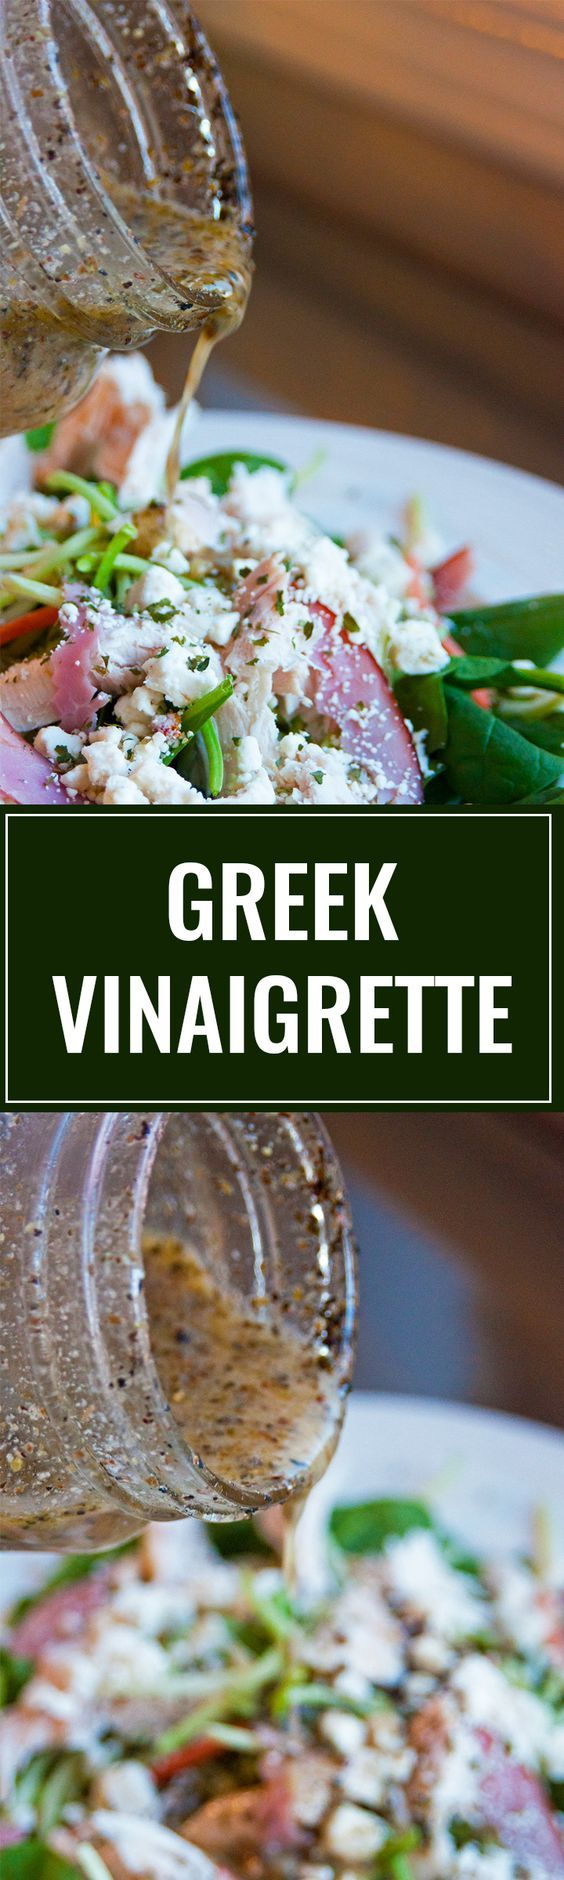 Homemade Greek Vinaigrette. This homemade salad dressing is delicious over salads, as a marinade and on a greek pizza! This healthy recipe packs a clean eating punch! | thebewitchinkitchen.com: